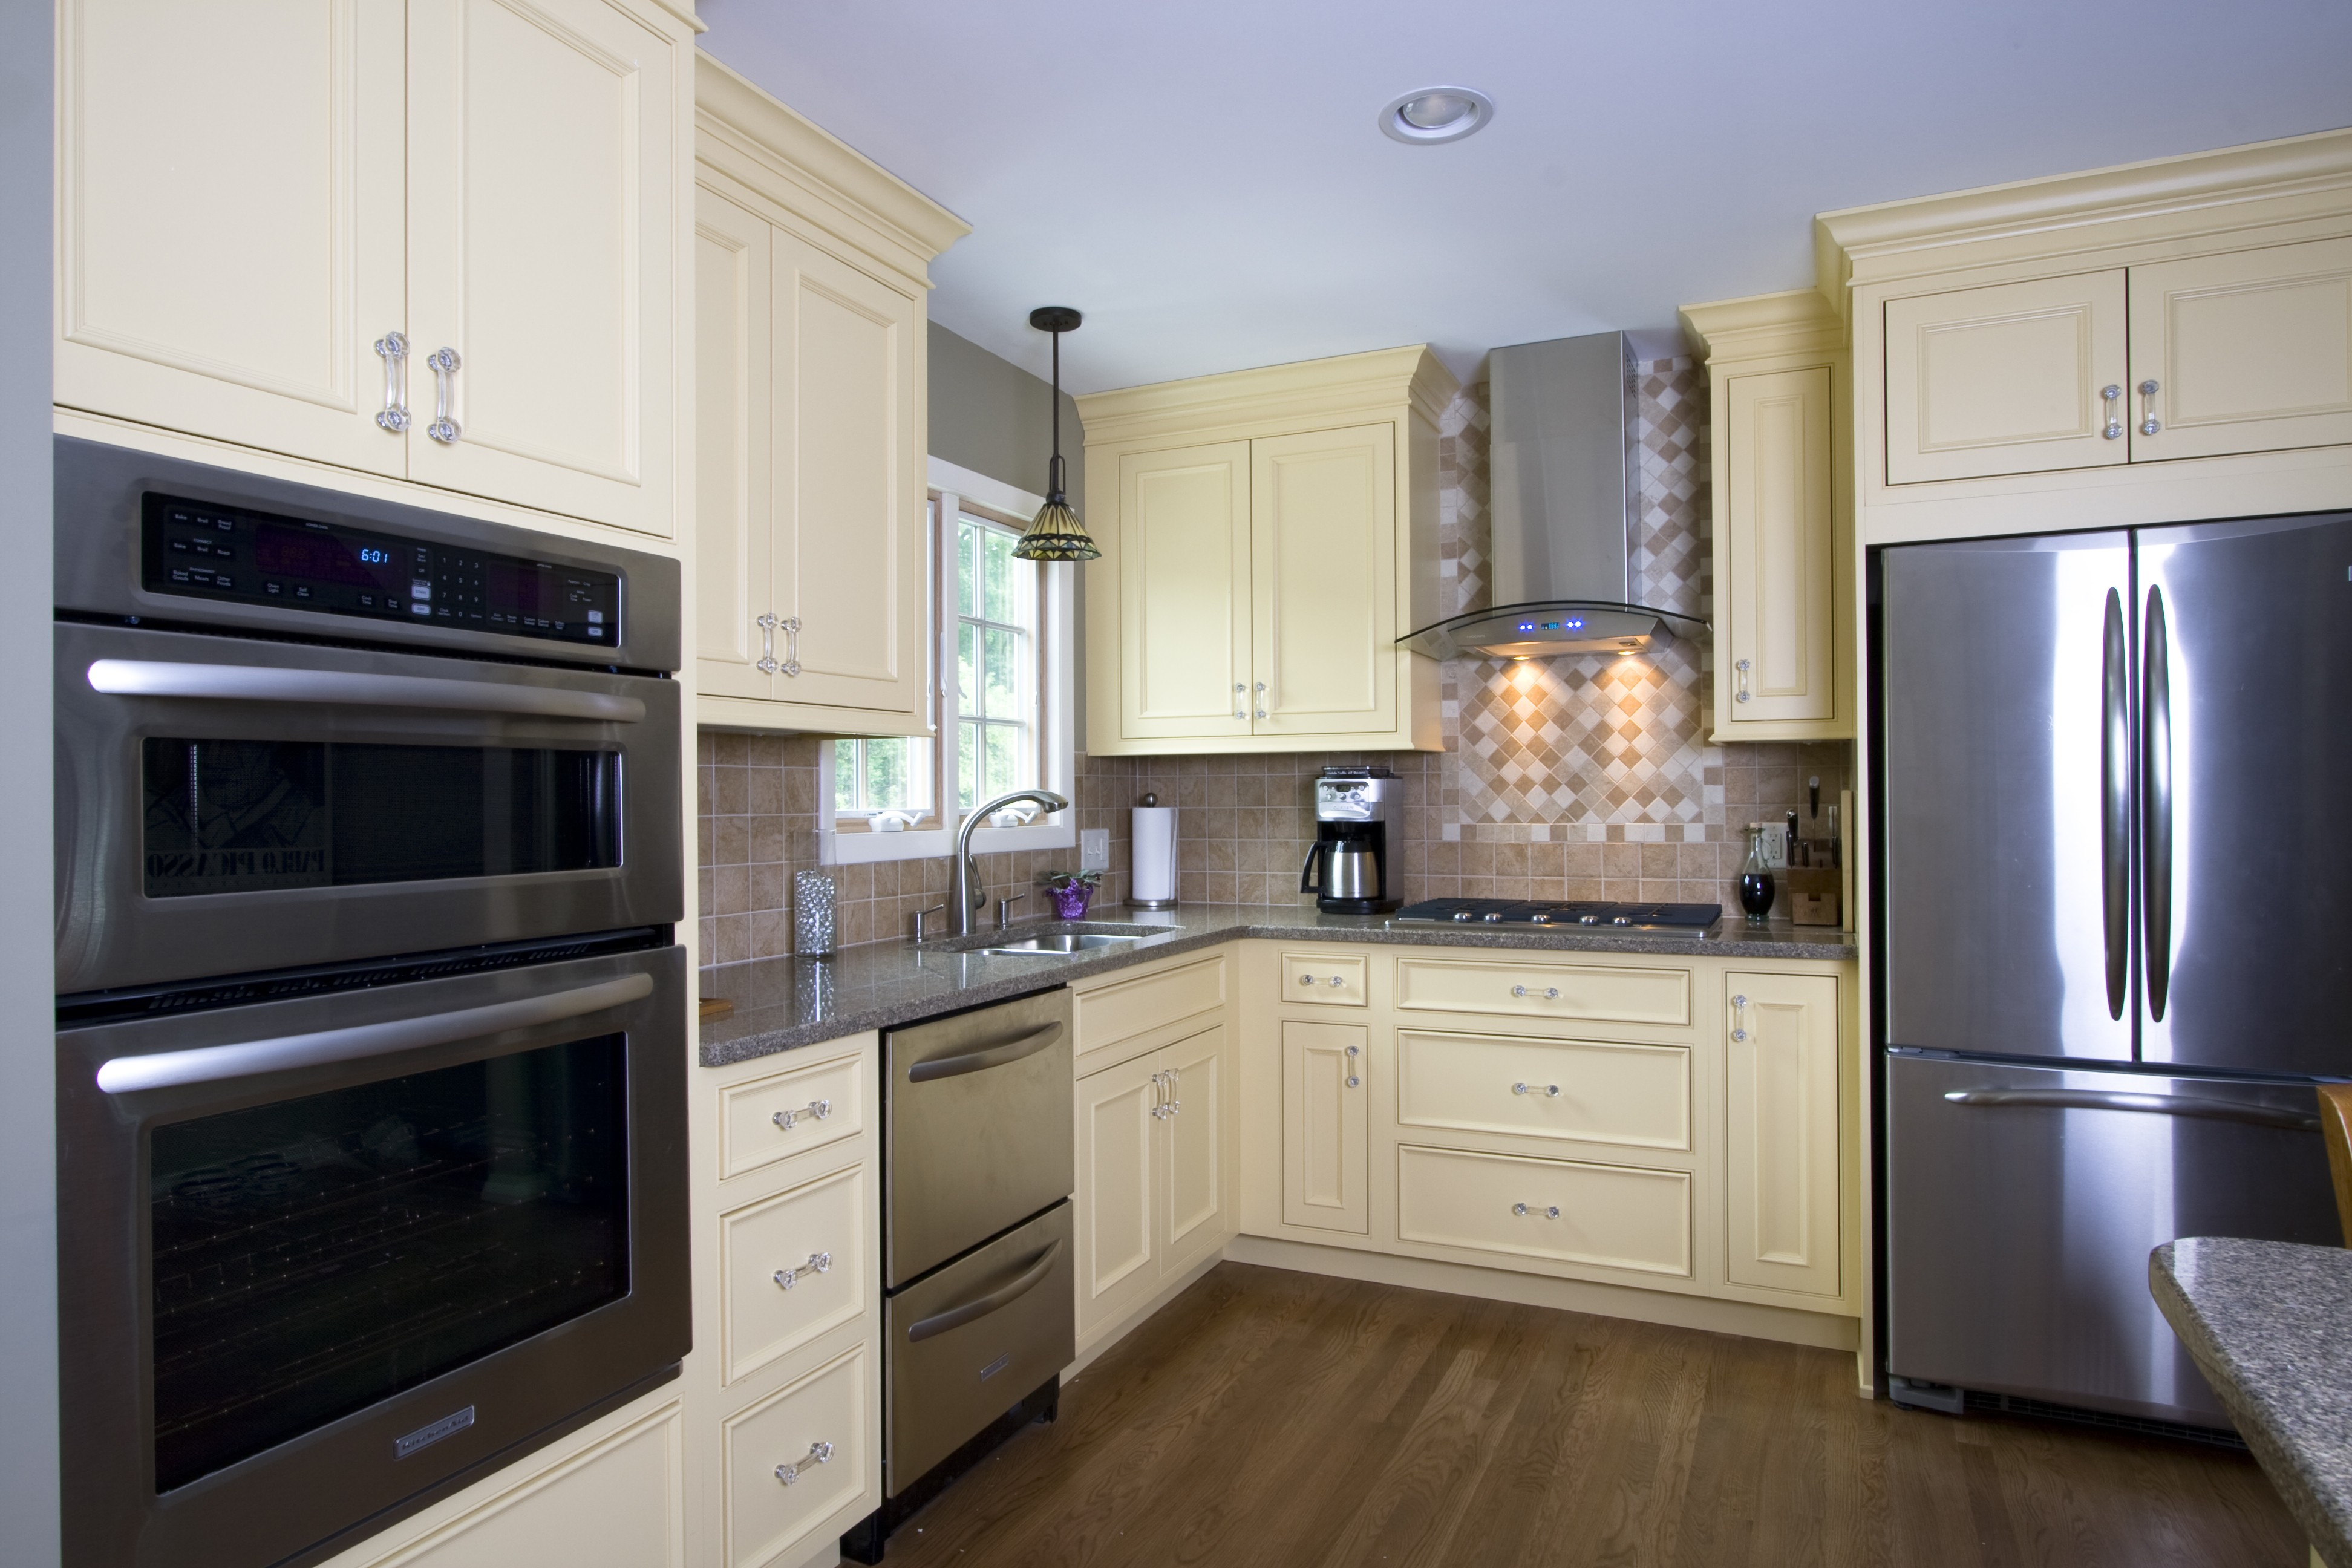 Attractive Monmouth County Kitchen Contractor NJ Design Build Pros